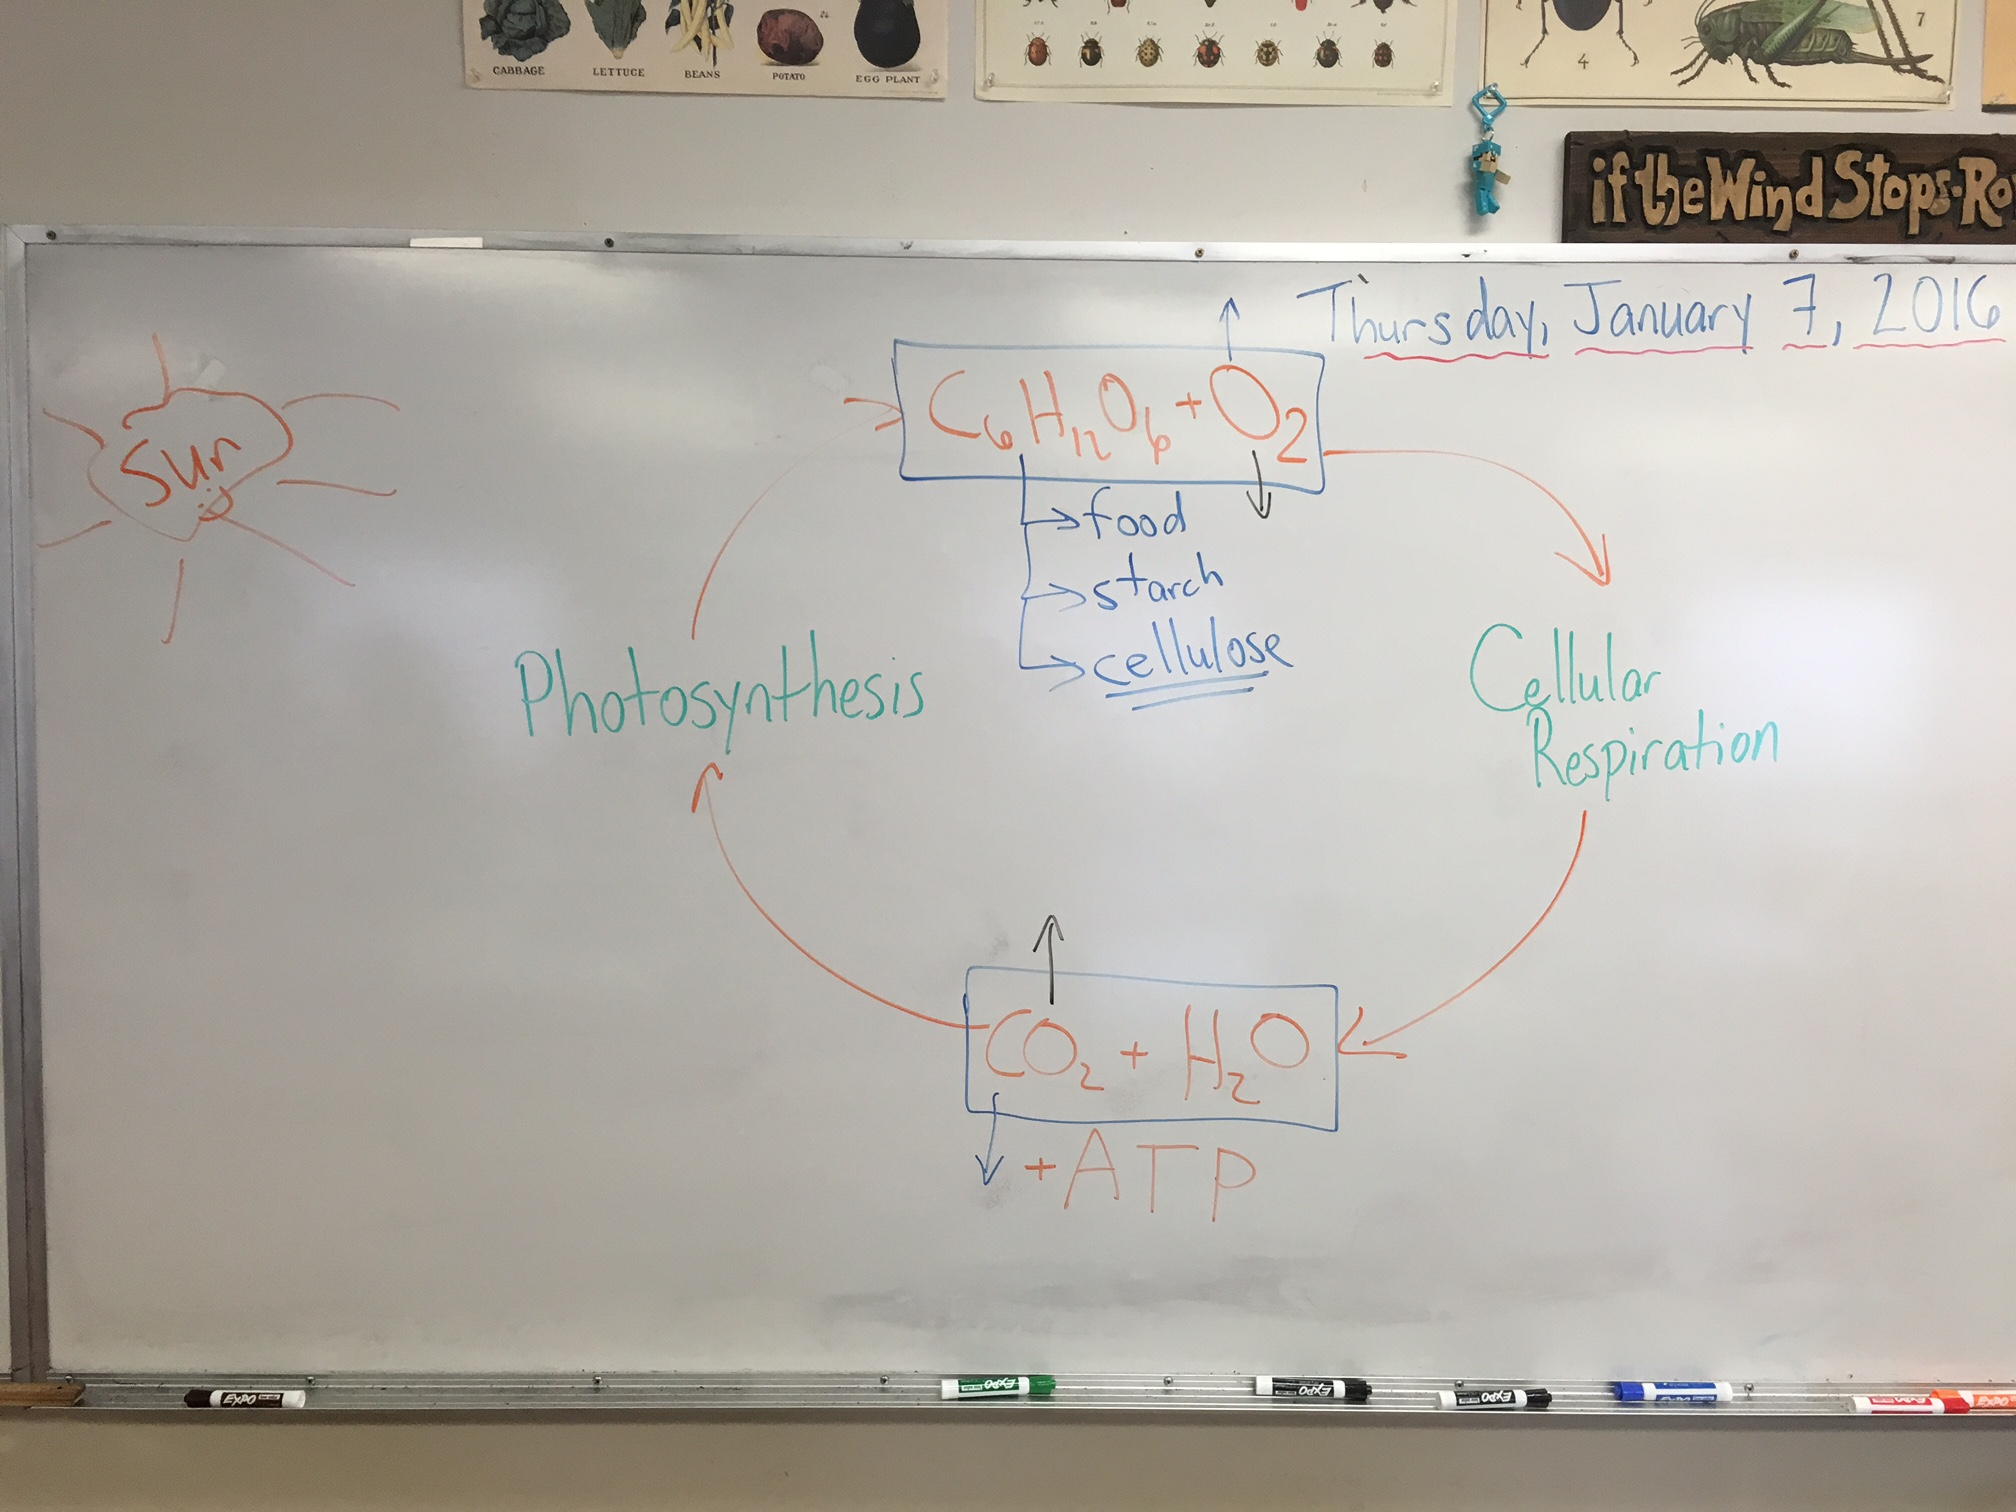 Energy Matter And Organization Photosynthesis Amp Cellular Respiration Pogils